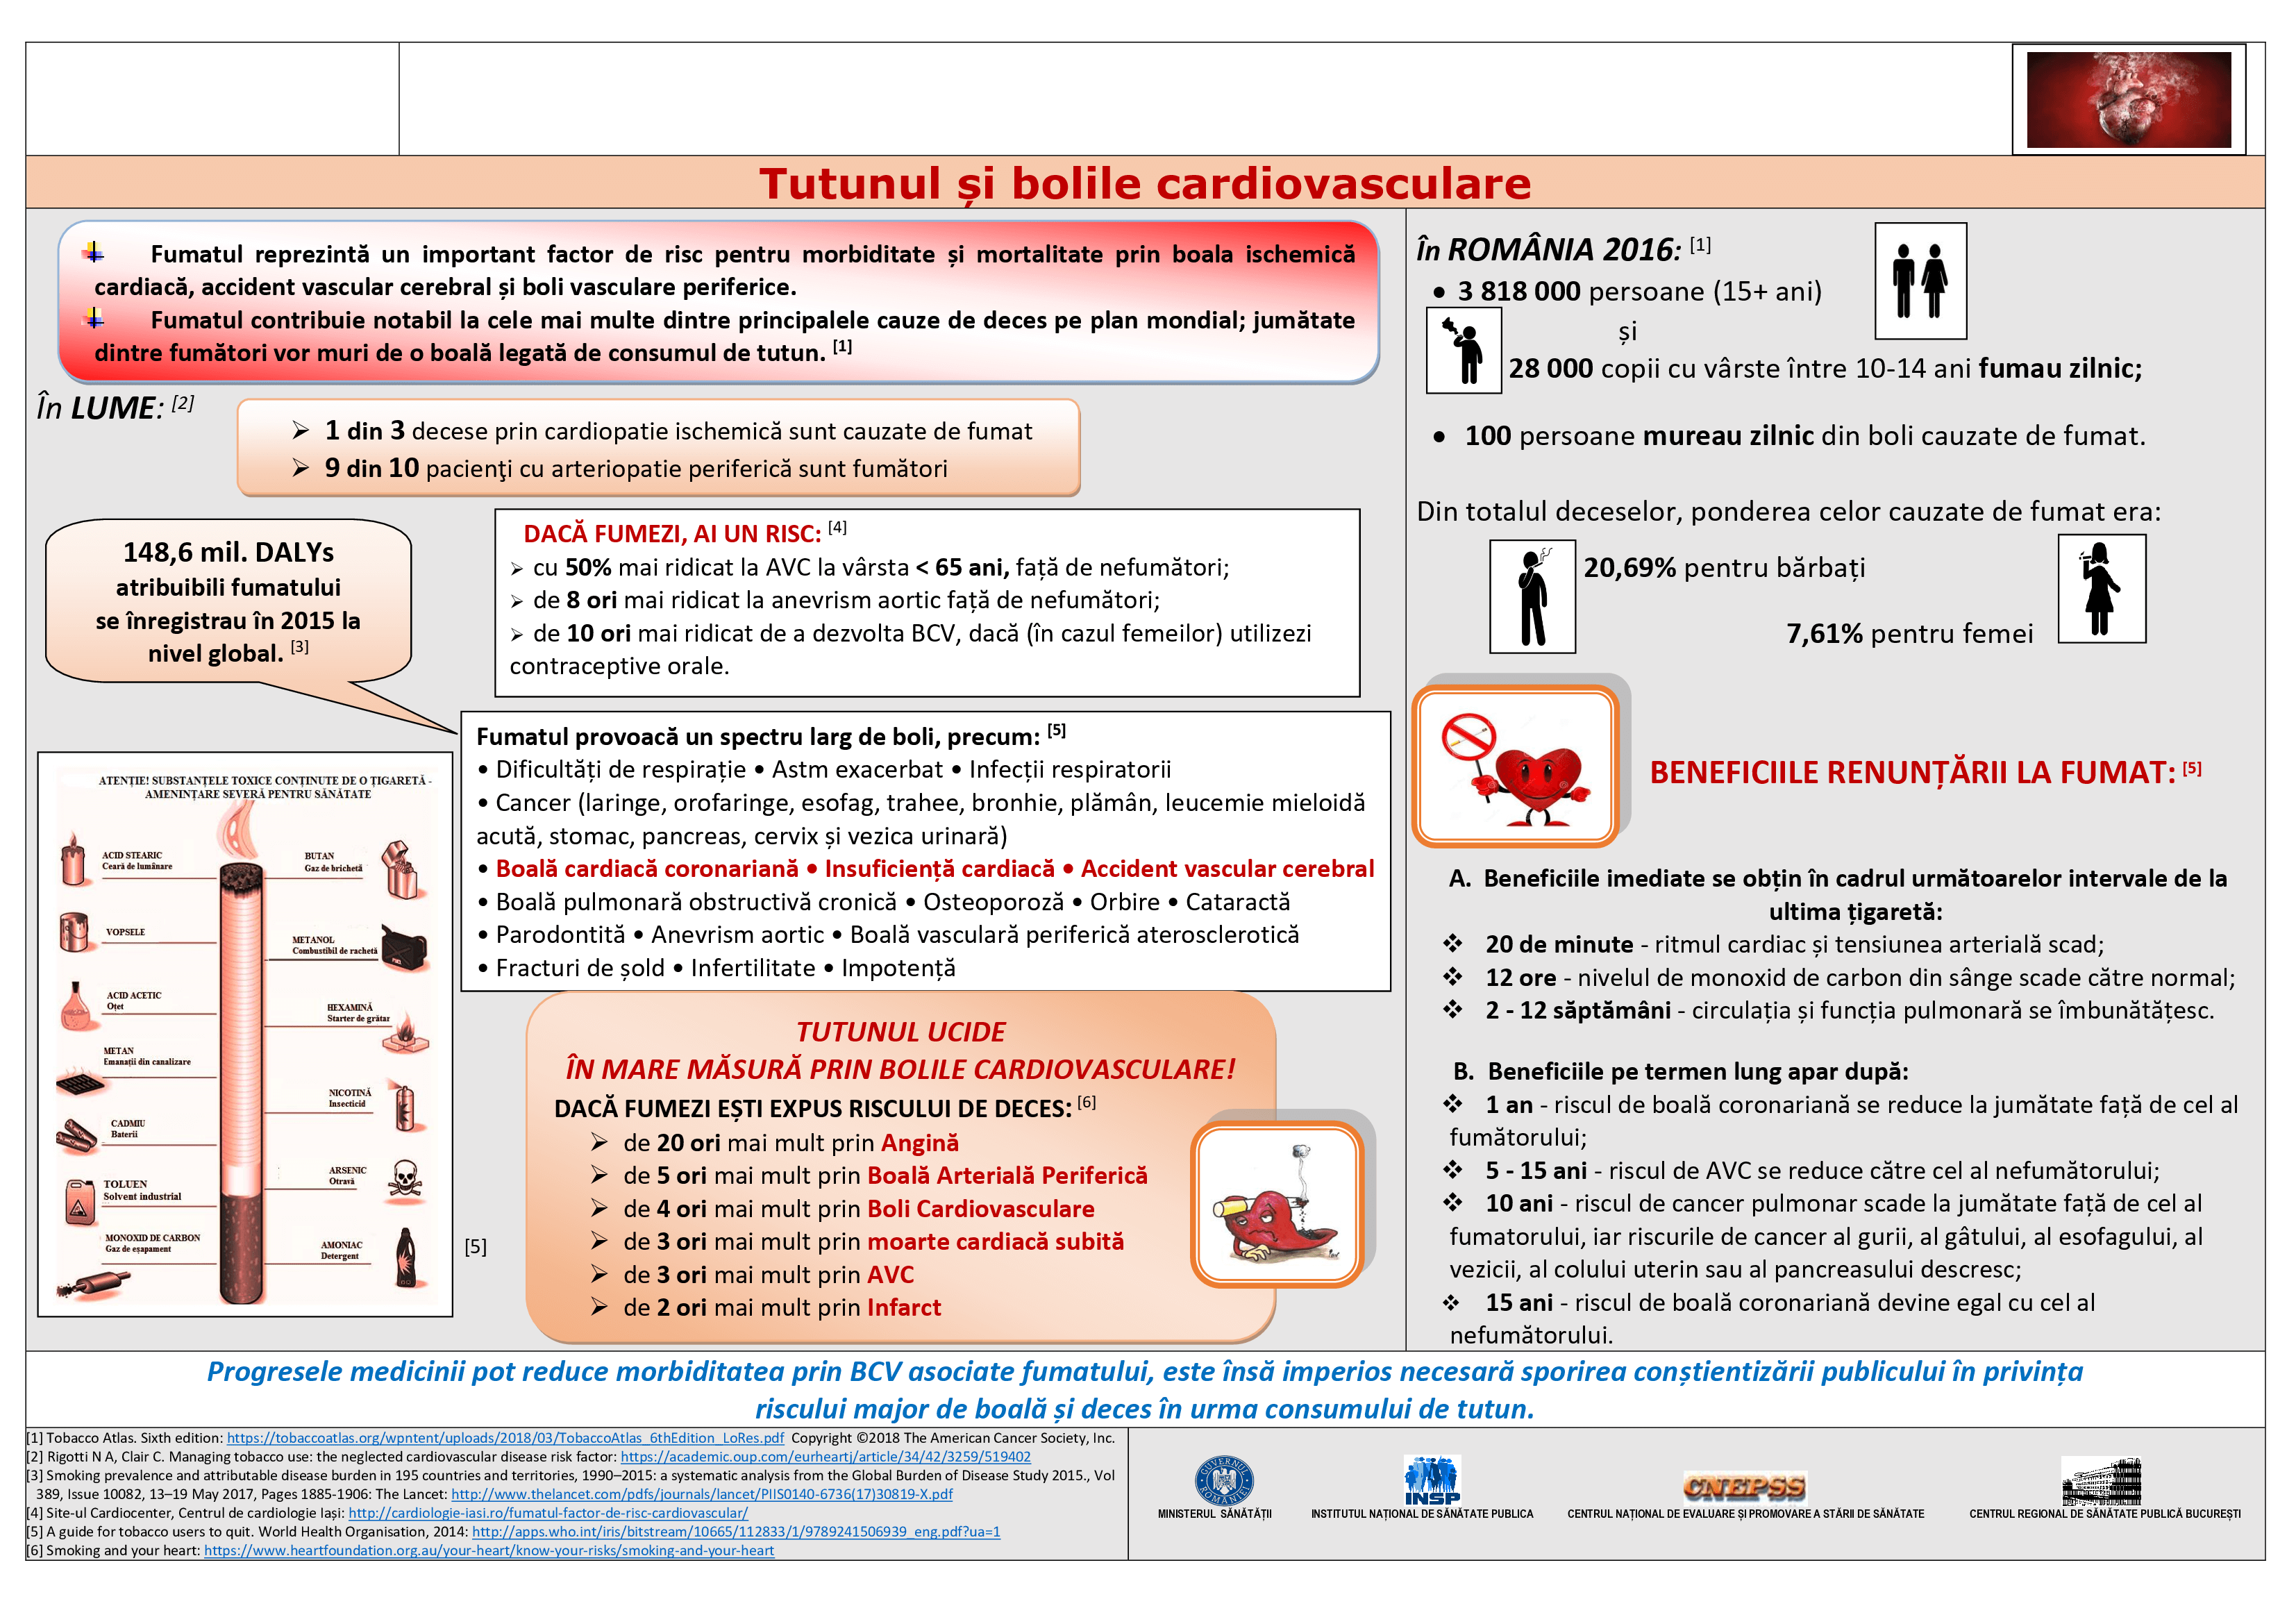 http://www.medstar2000.ro/wp-content/uploads/2019/02/Tutunul-si-bolile-cardiovasculare.png